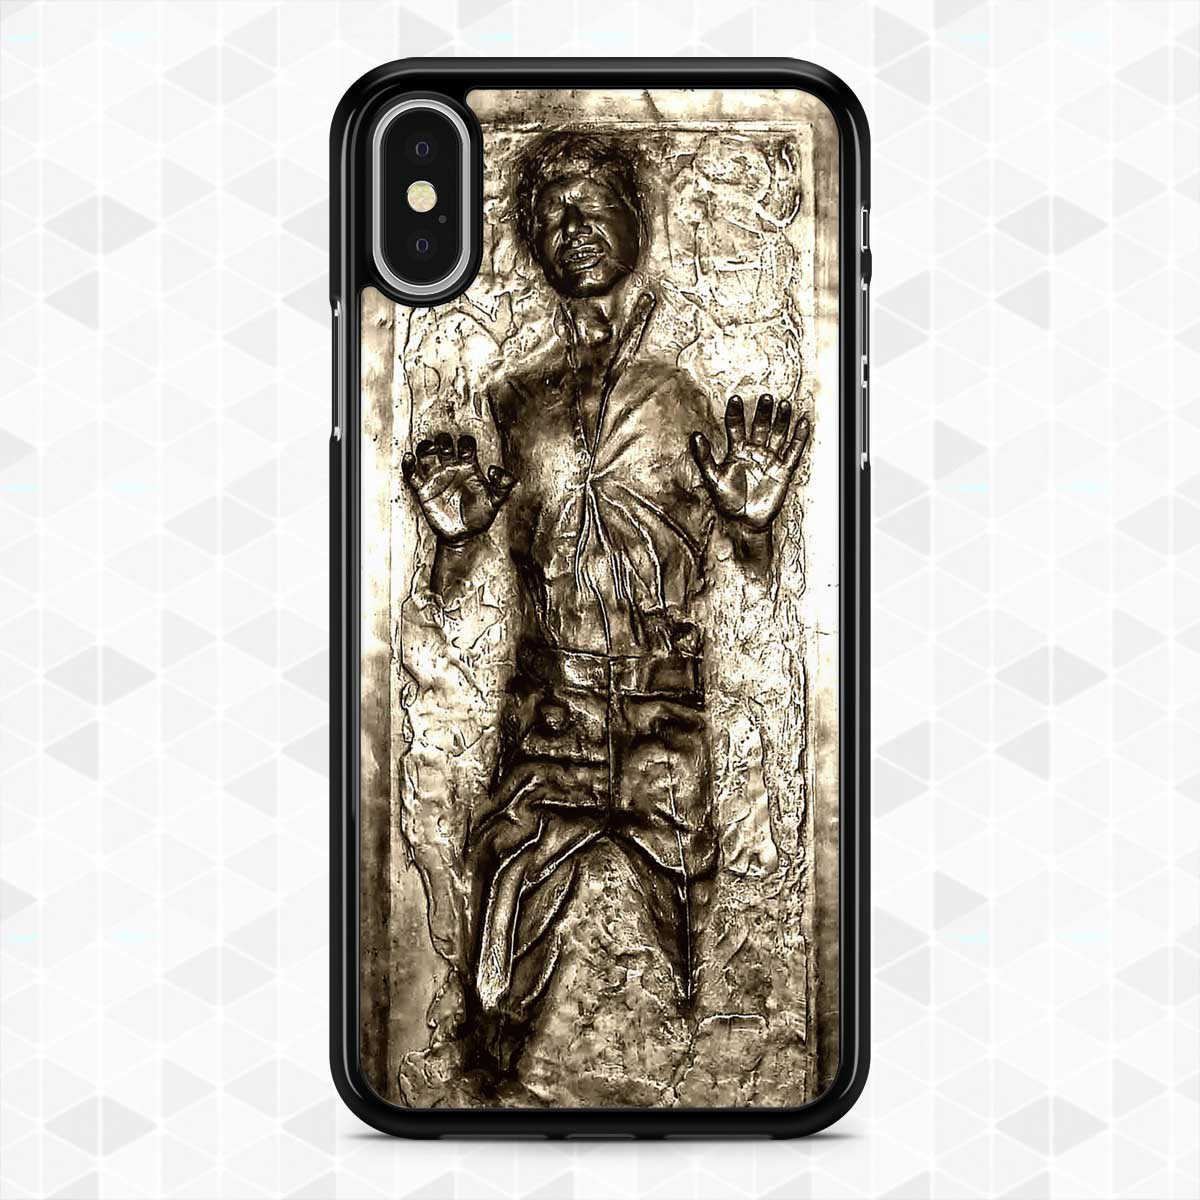 separation shoes fc1e1 126ec Best!Han!Solo!Carbonite Cases iPhone XS Max 8 Plus 7+ XR Samsung Note 9 S9+  Case